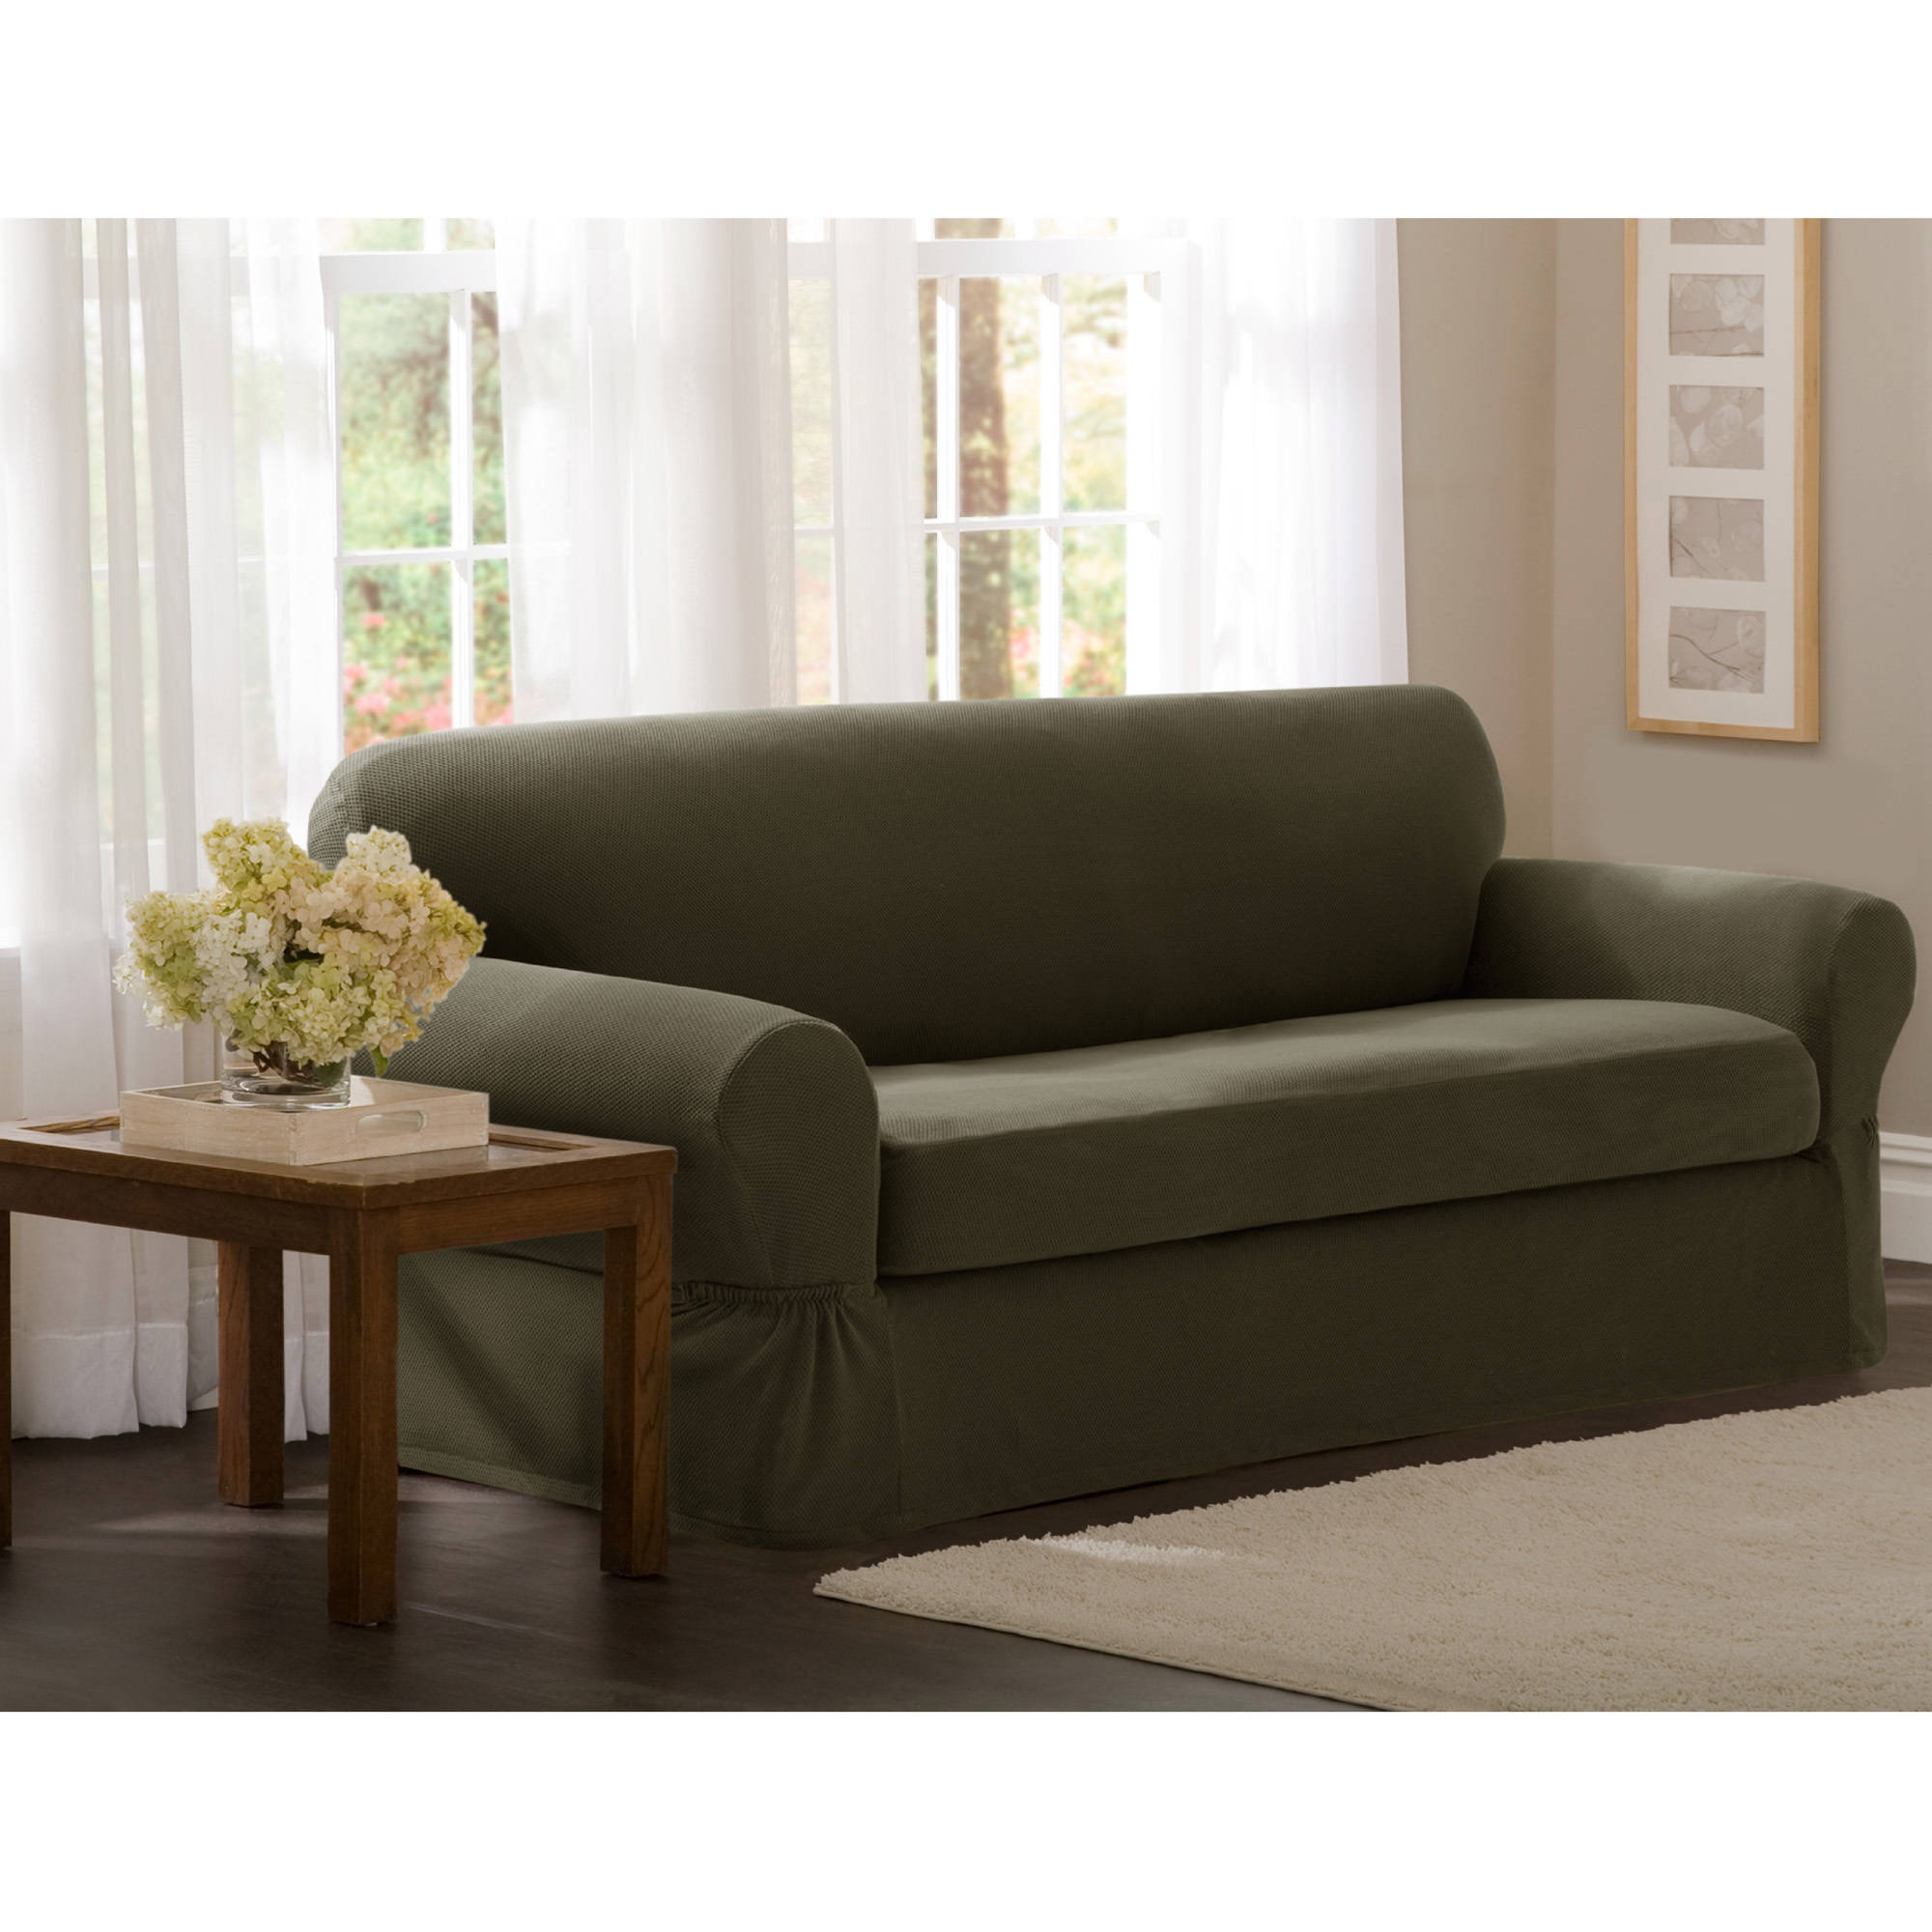 Maytex Stretch 2 Piece Sofa Slipcover Walmart